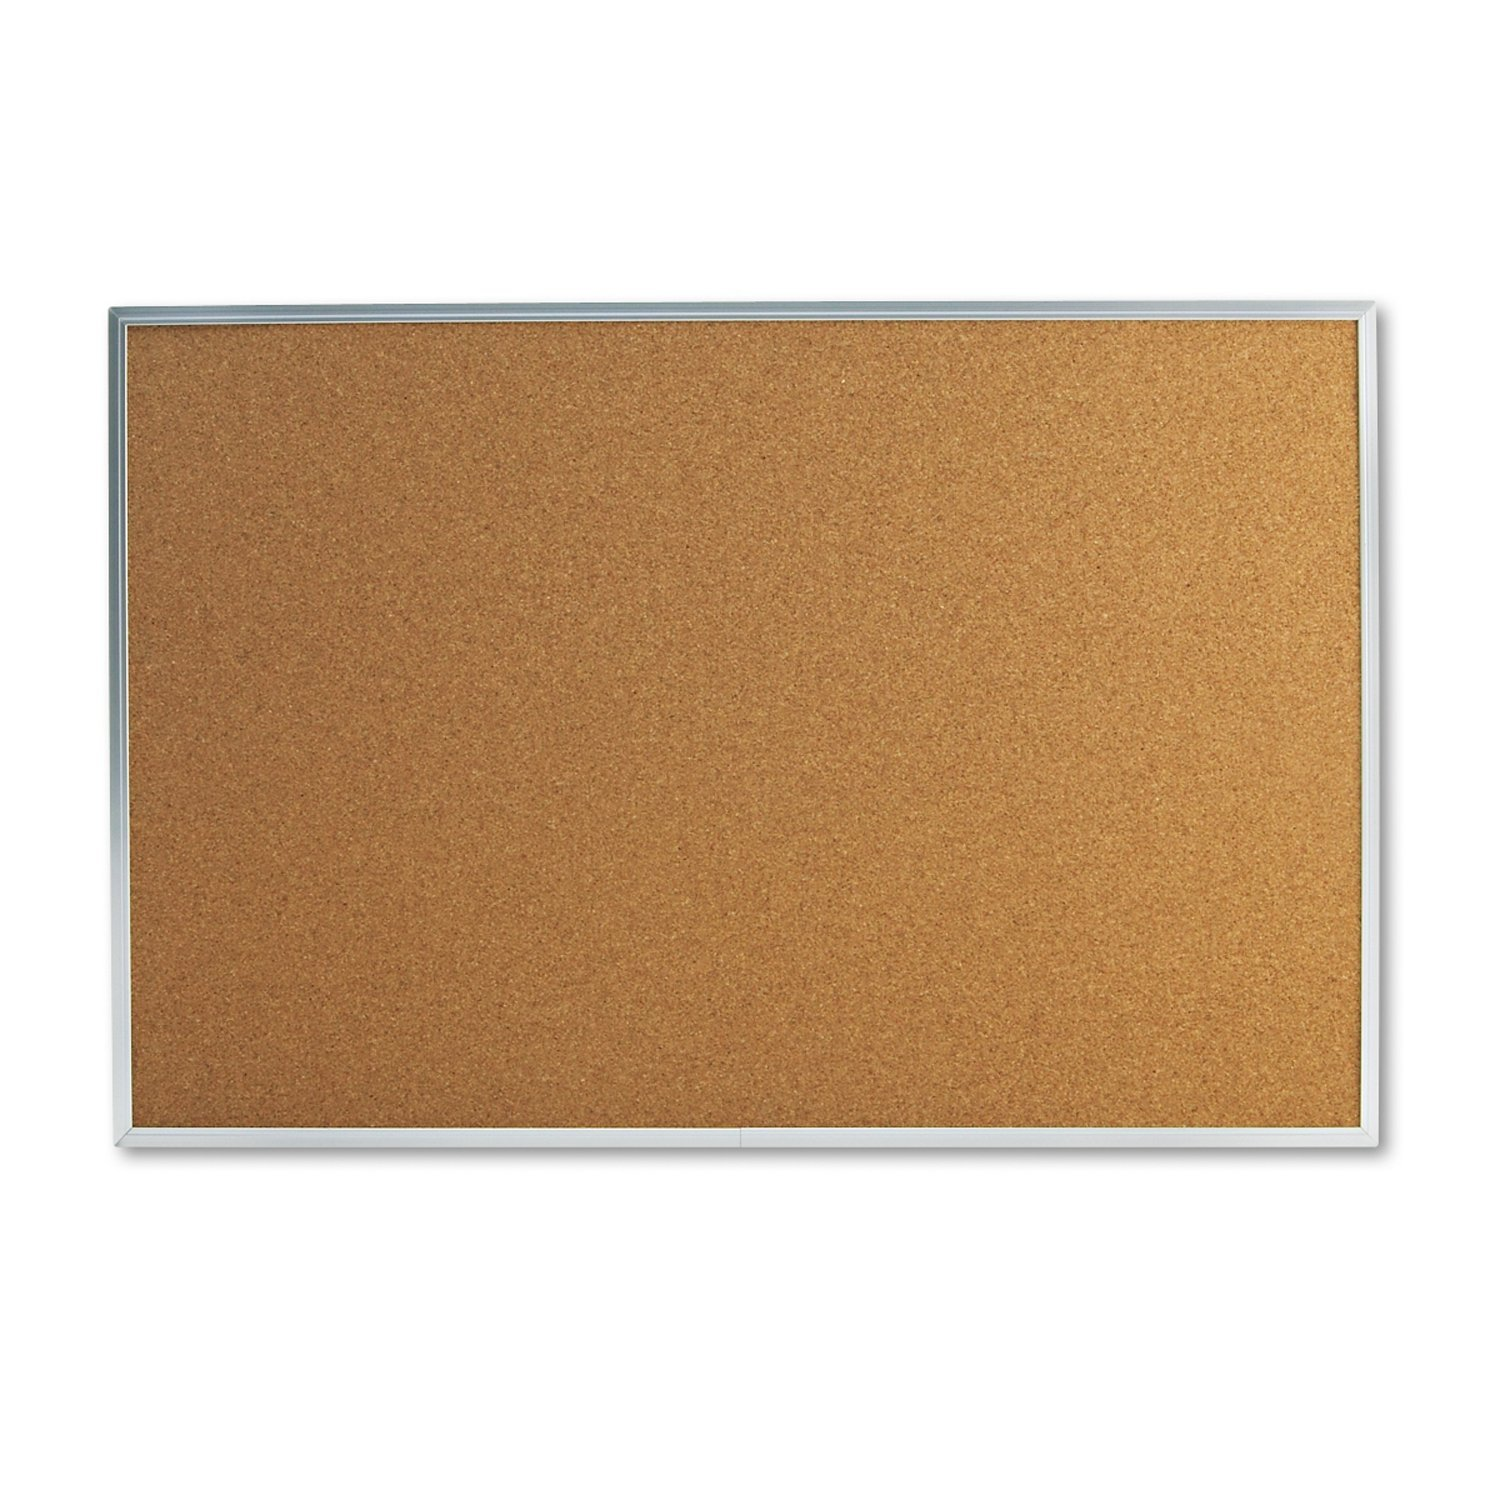 universal 43613 bulletin board natural cork 36 x 24 satin finished aluminum frame bulletin boards